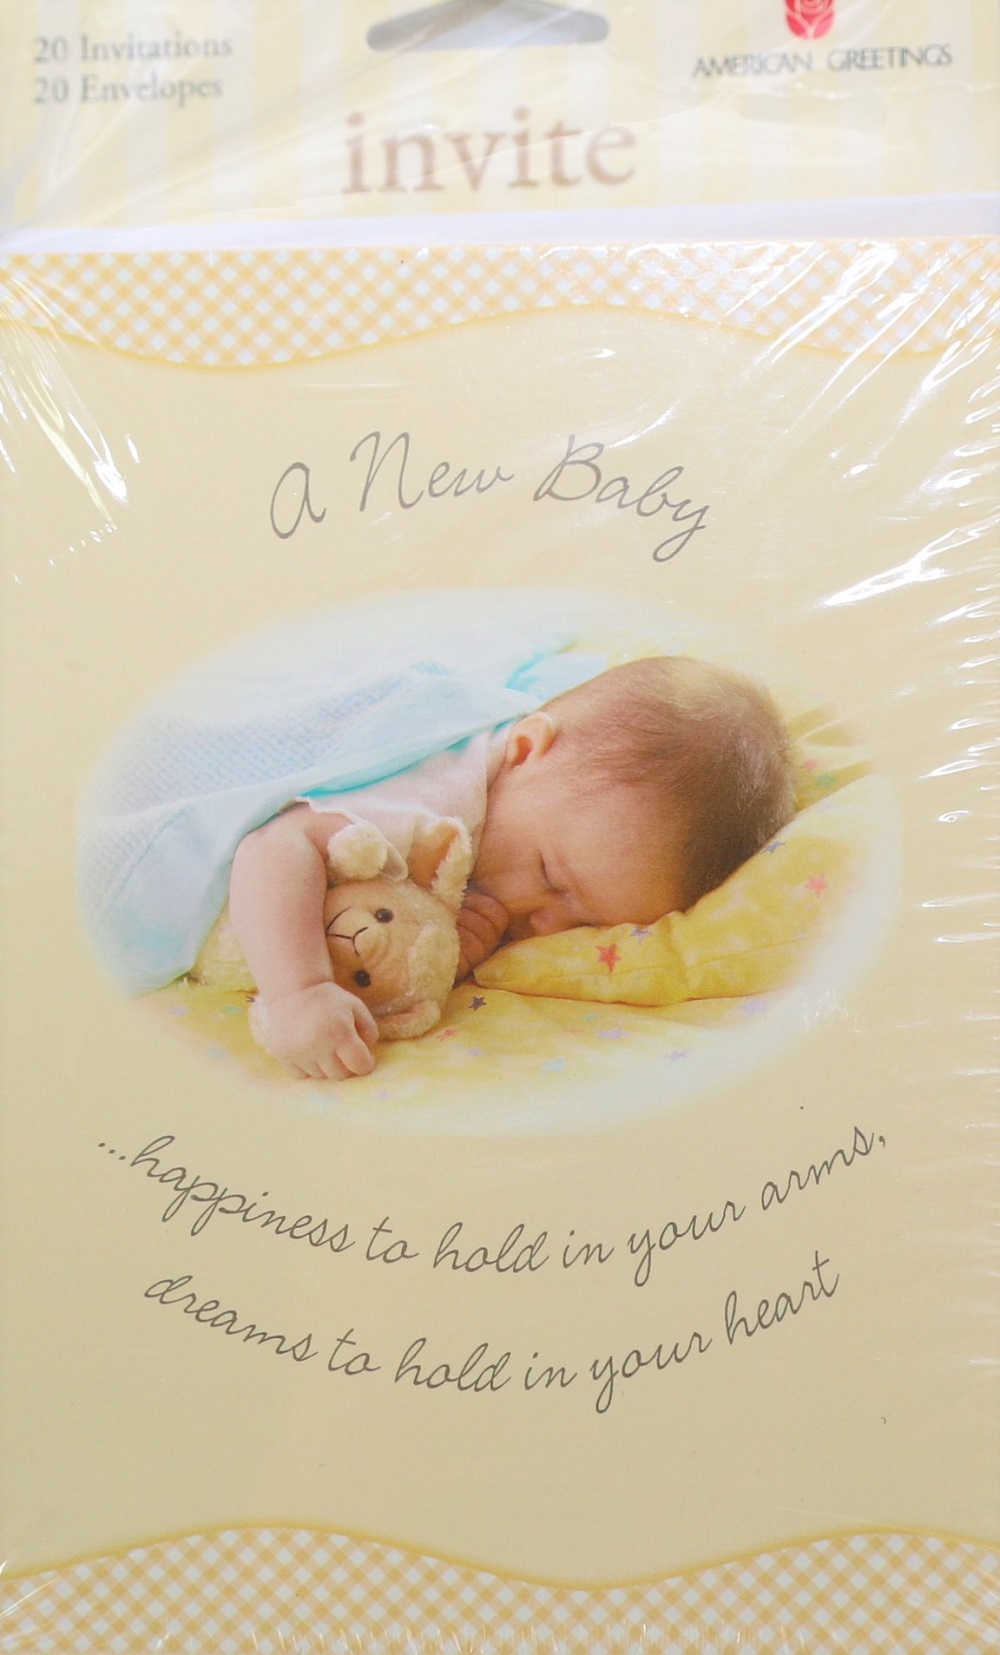 American Greetings E7 Party New Baby Boy Girl Shower 20 Postcard ...